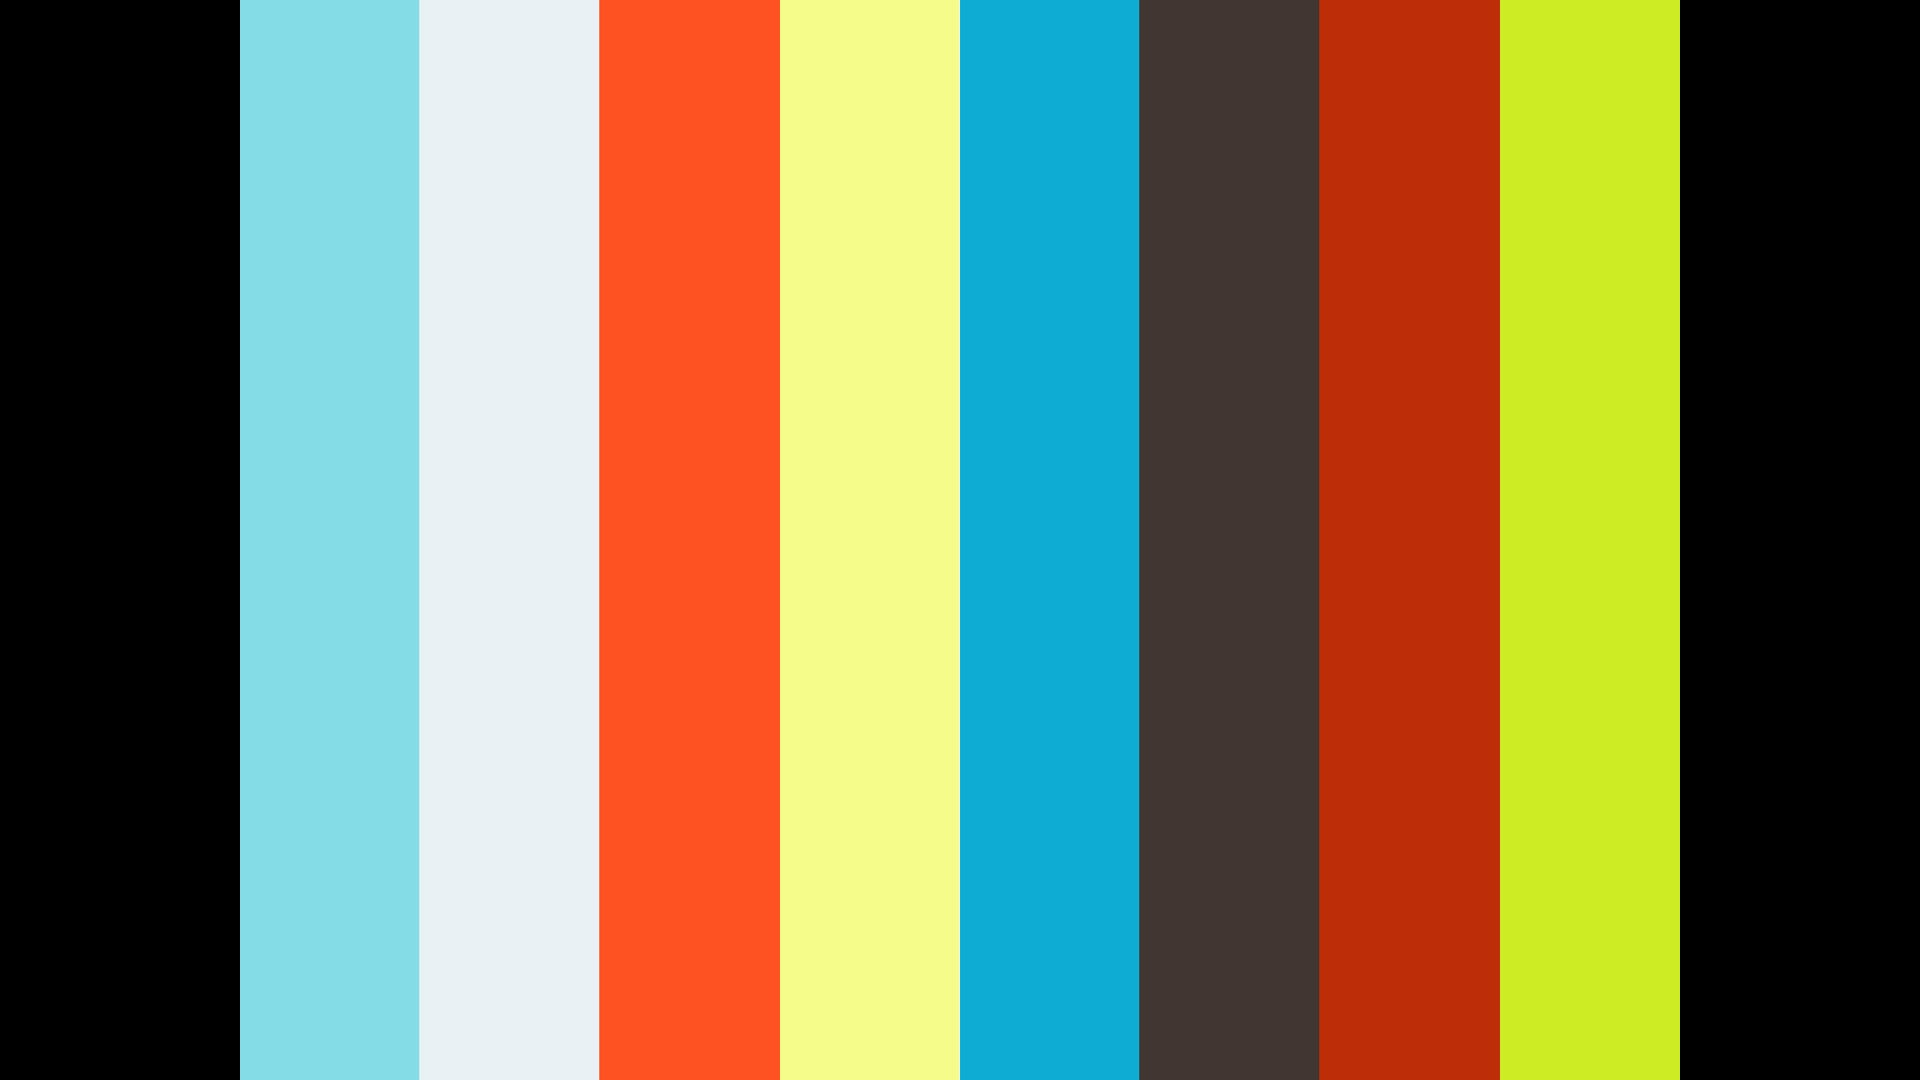 Red Dragon (8A), Queens Crag, Northumberland